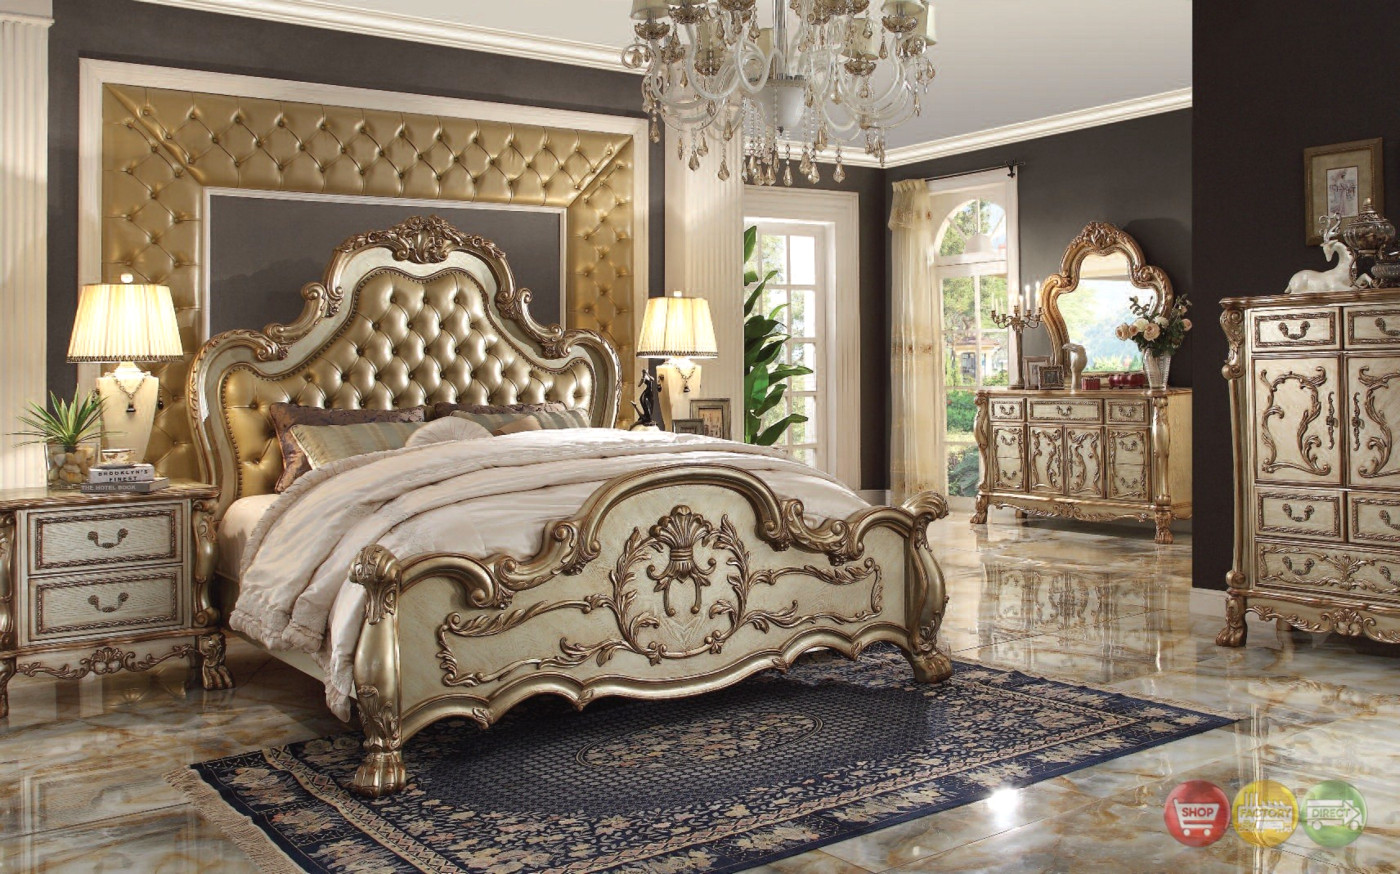 Dresden Luxury Upholstered 4pc King Bedroom Set In Antique Gold Patina